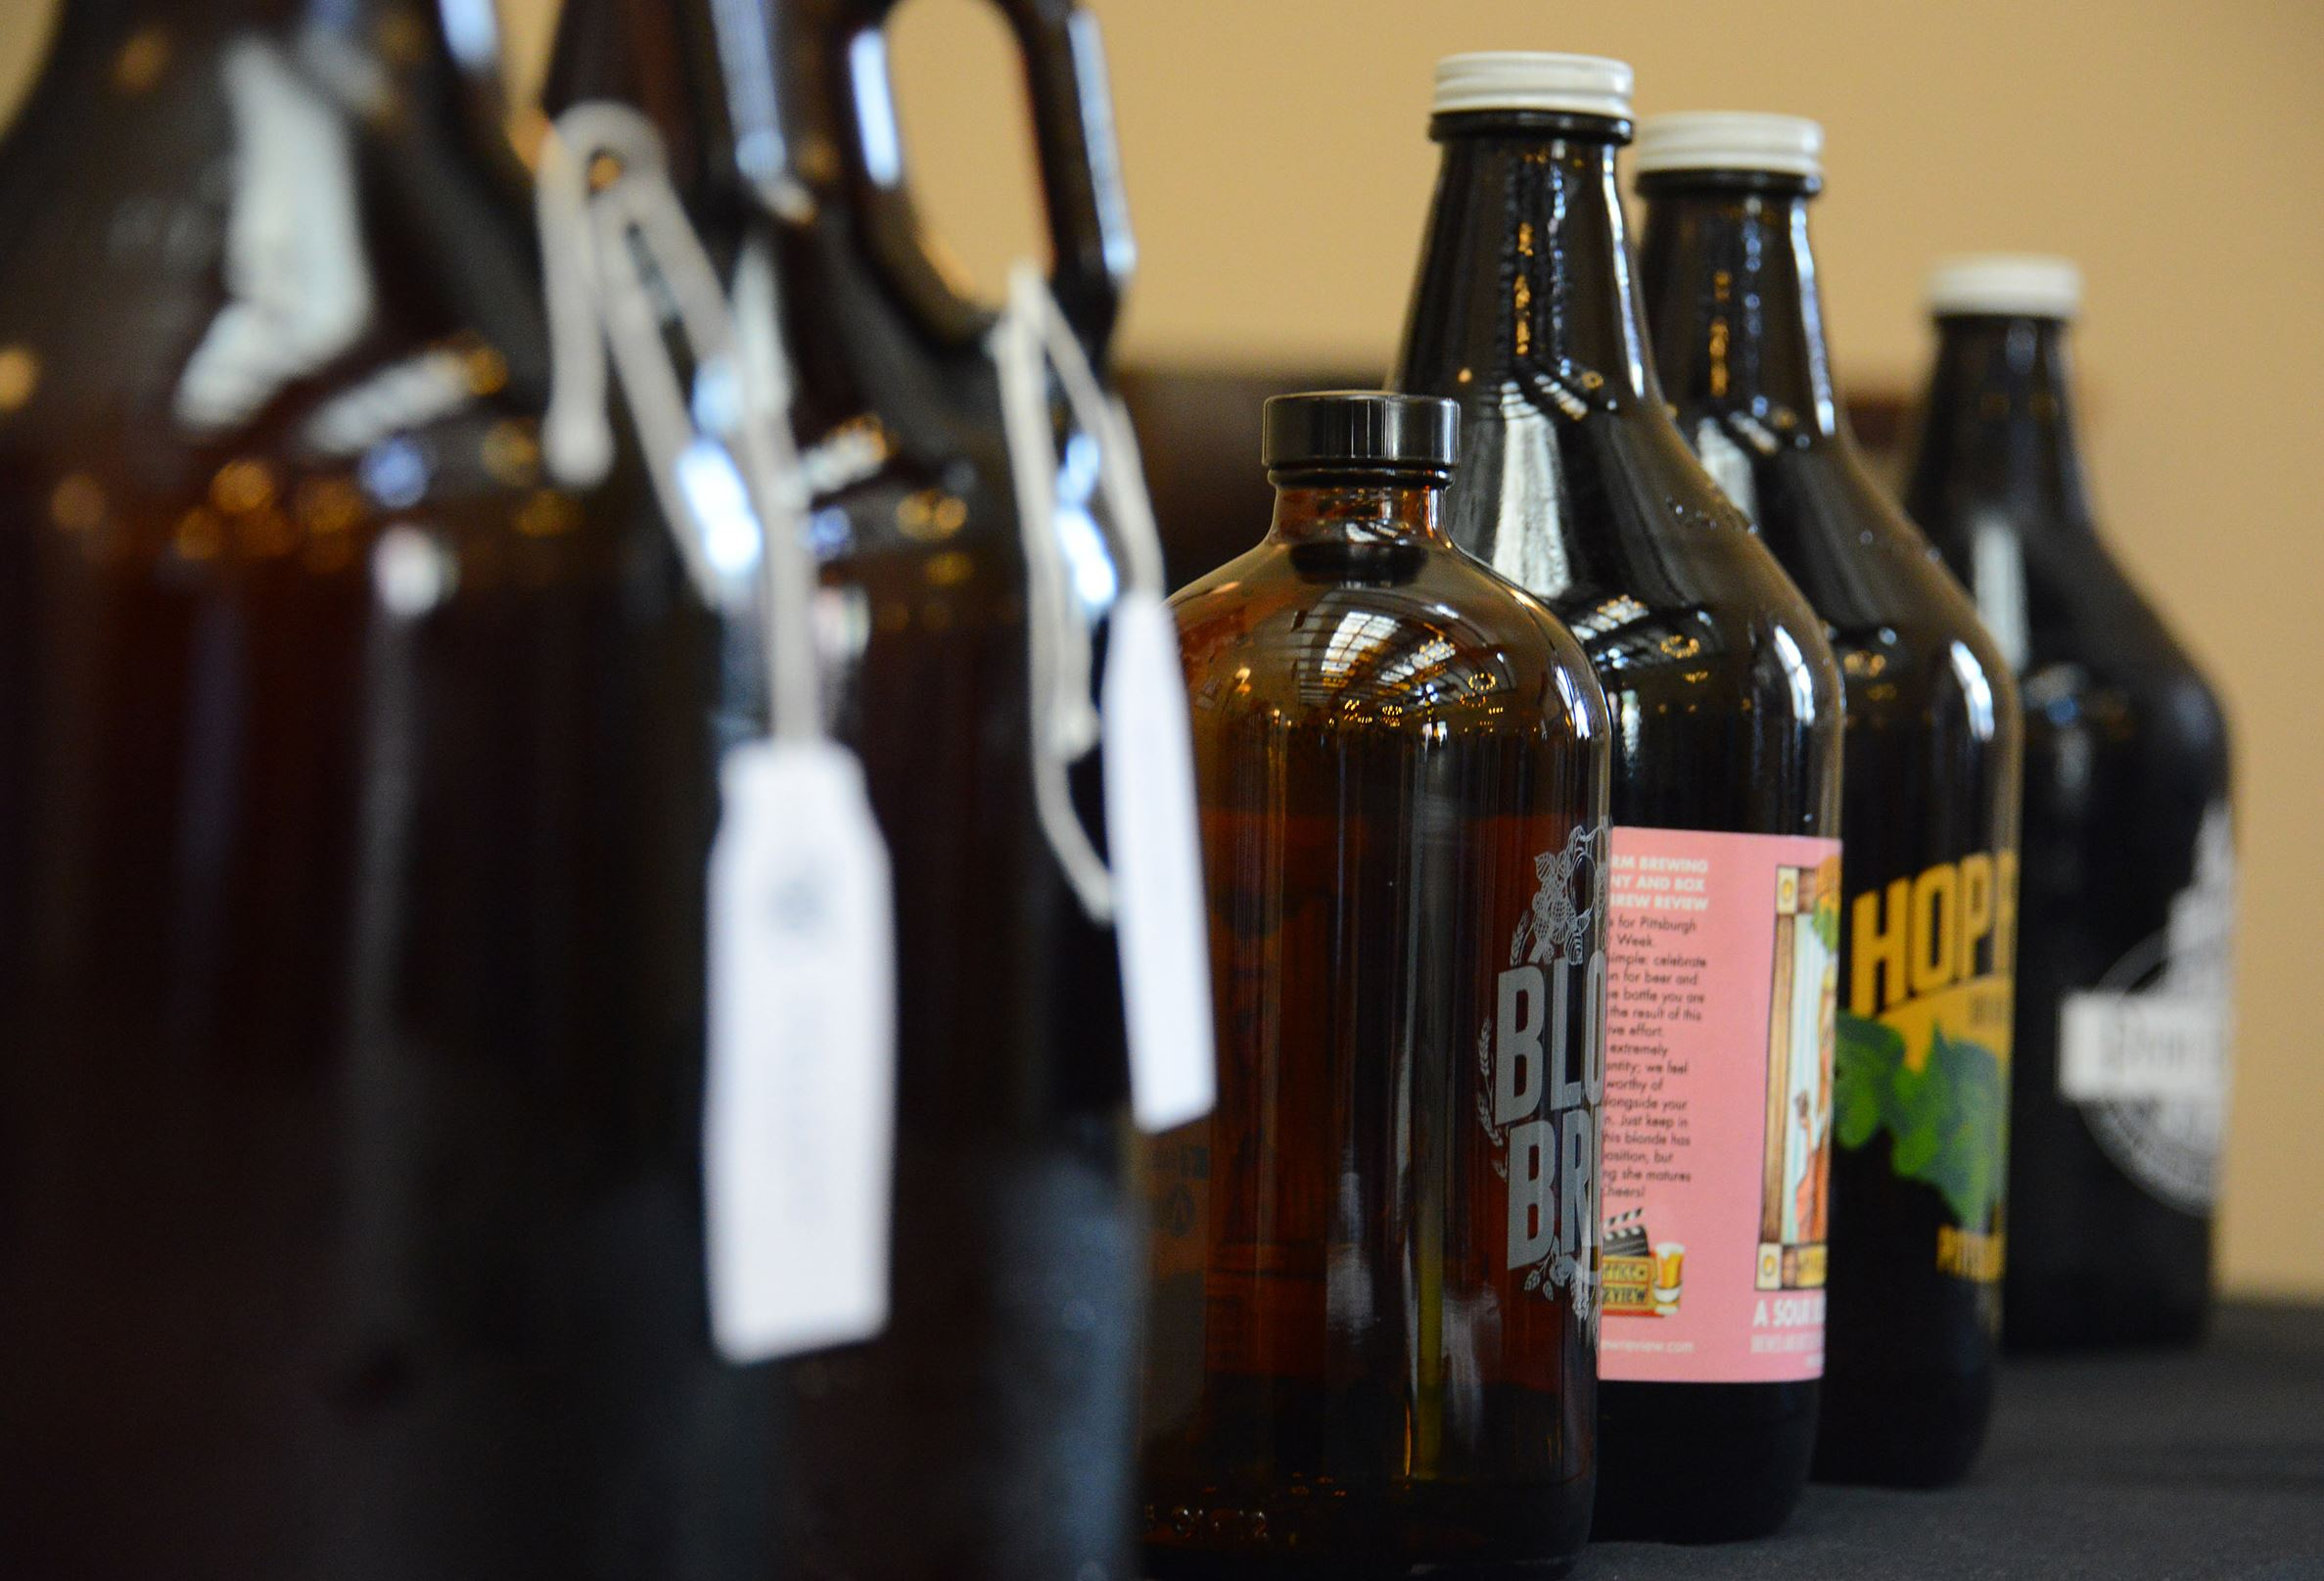 20170415lf-Brew03-3 A total of 18 breweries are participating in the sixth year for Pittsburgh Craft Beer Week, a celebration of the local industry at venues across the city and region that runs April 21-30.